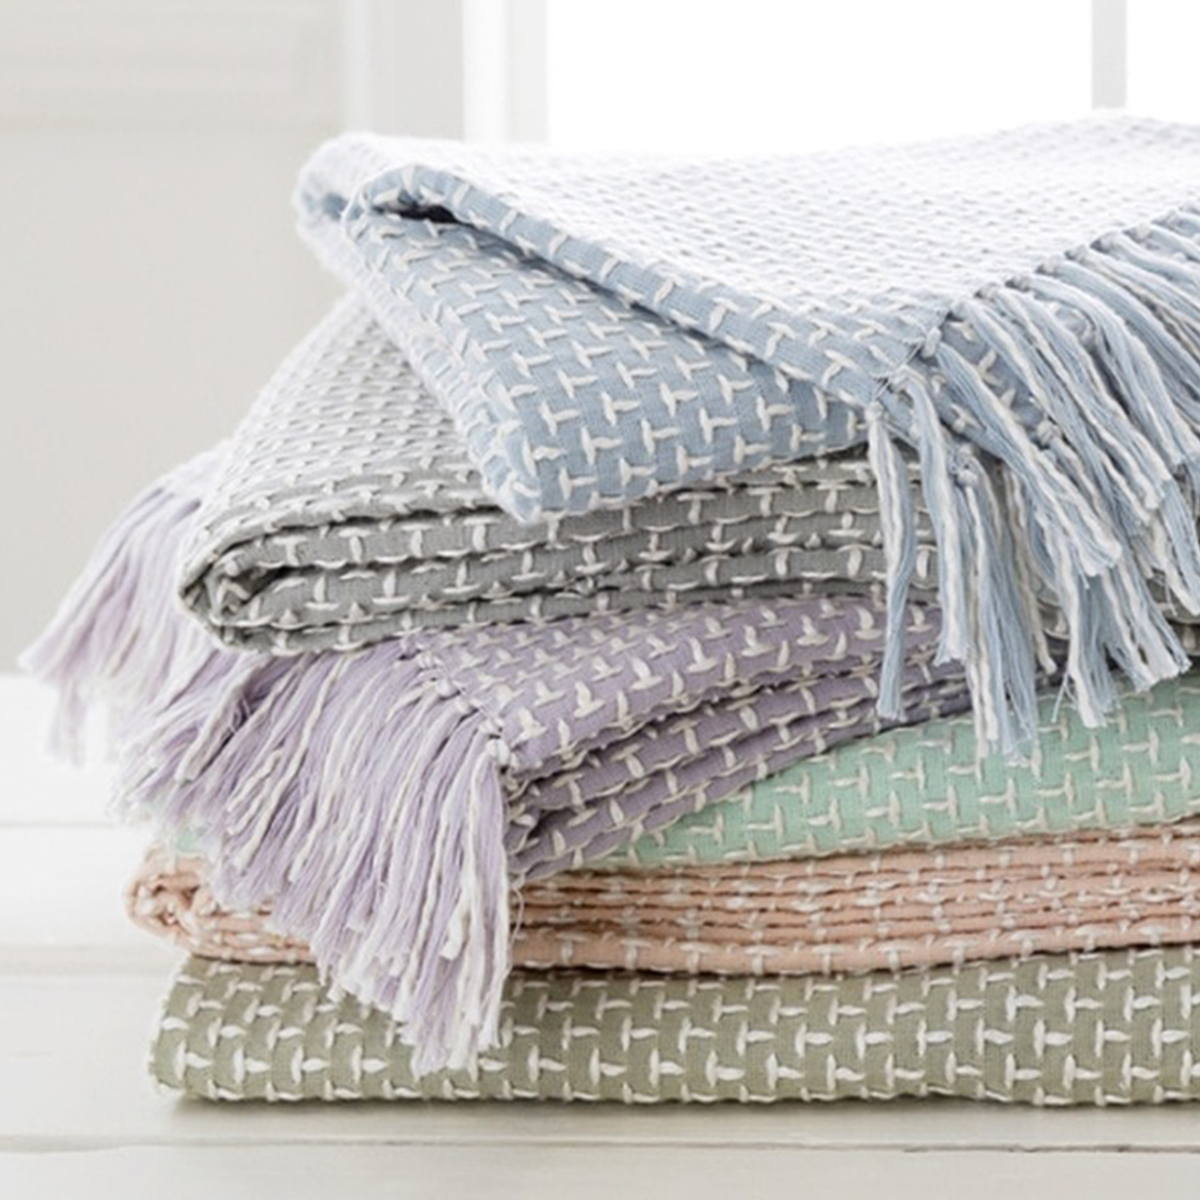 Overstock knit throw blankets in various pastel colors photo